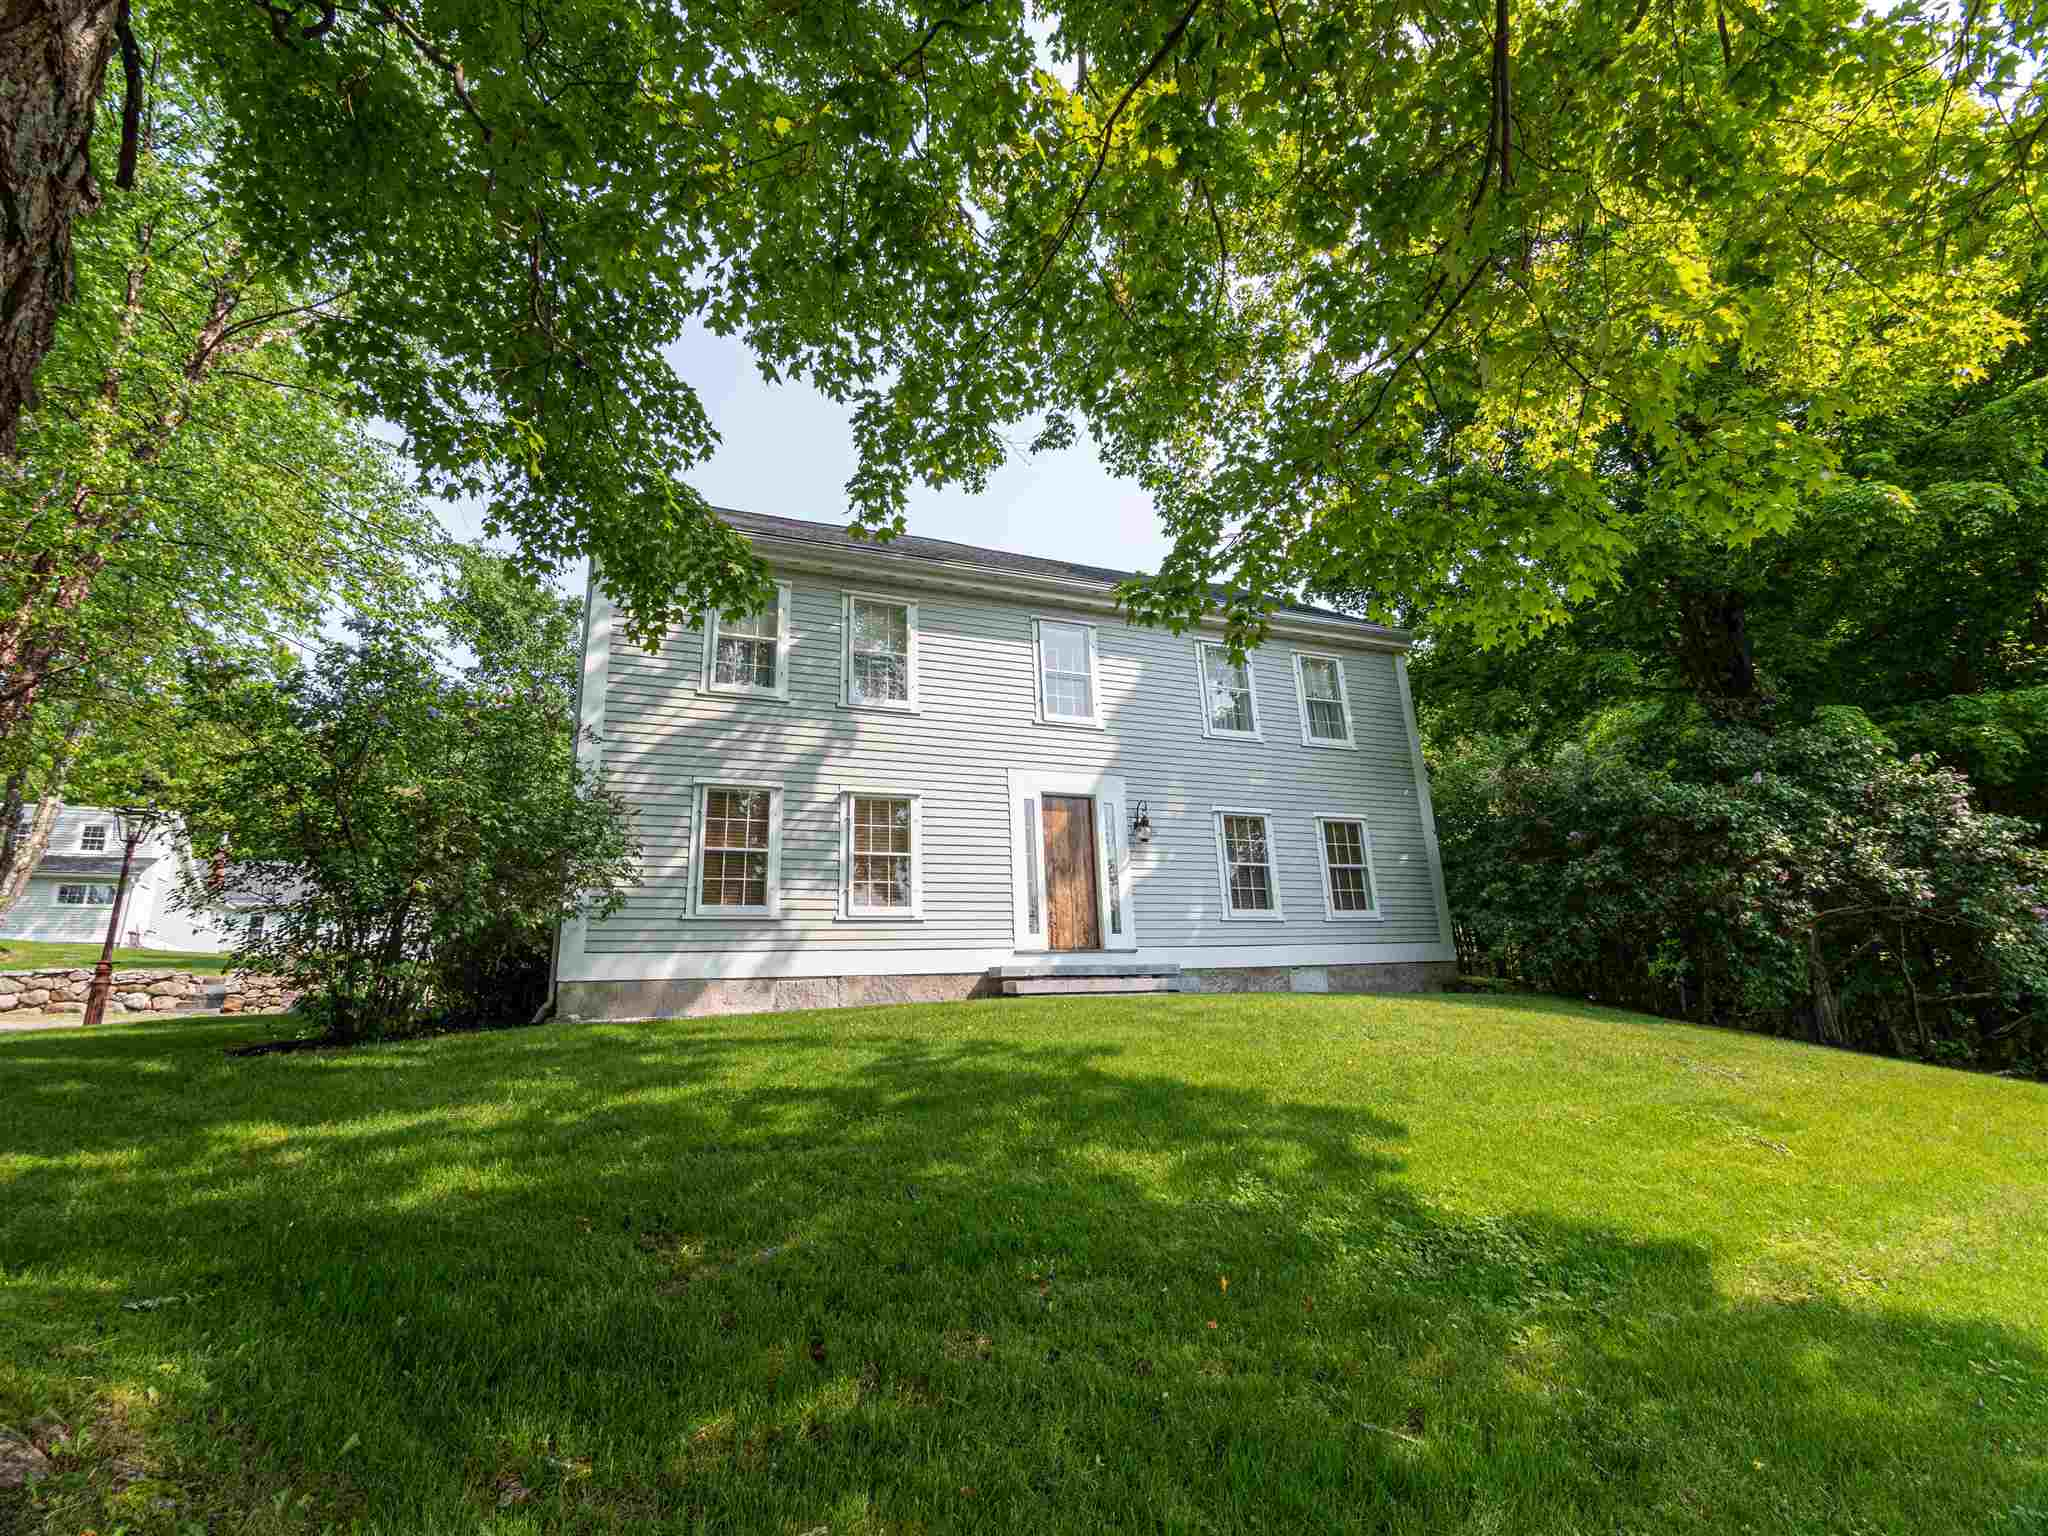 Photo of 207 Oak Hill Road Concord NH 03301